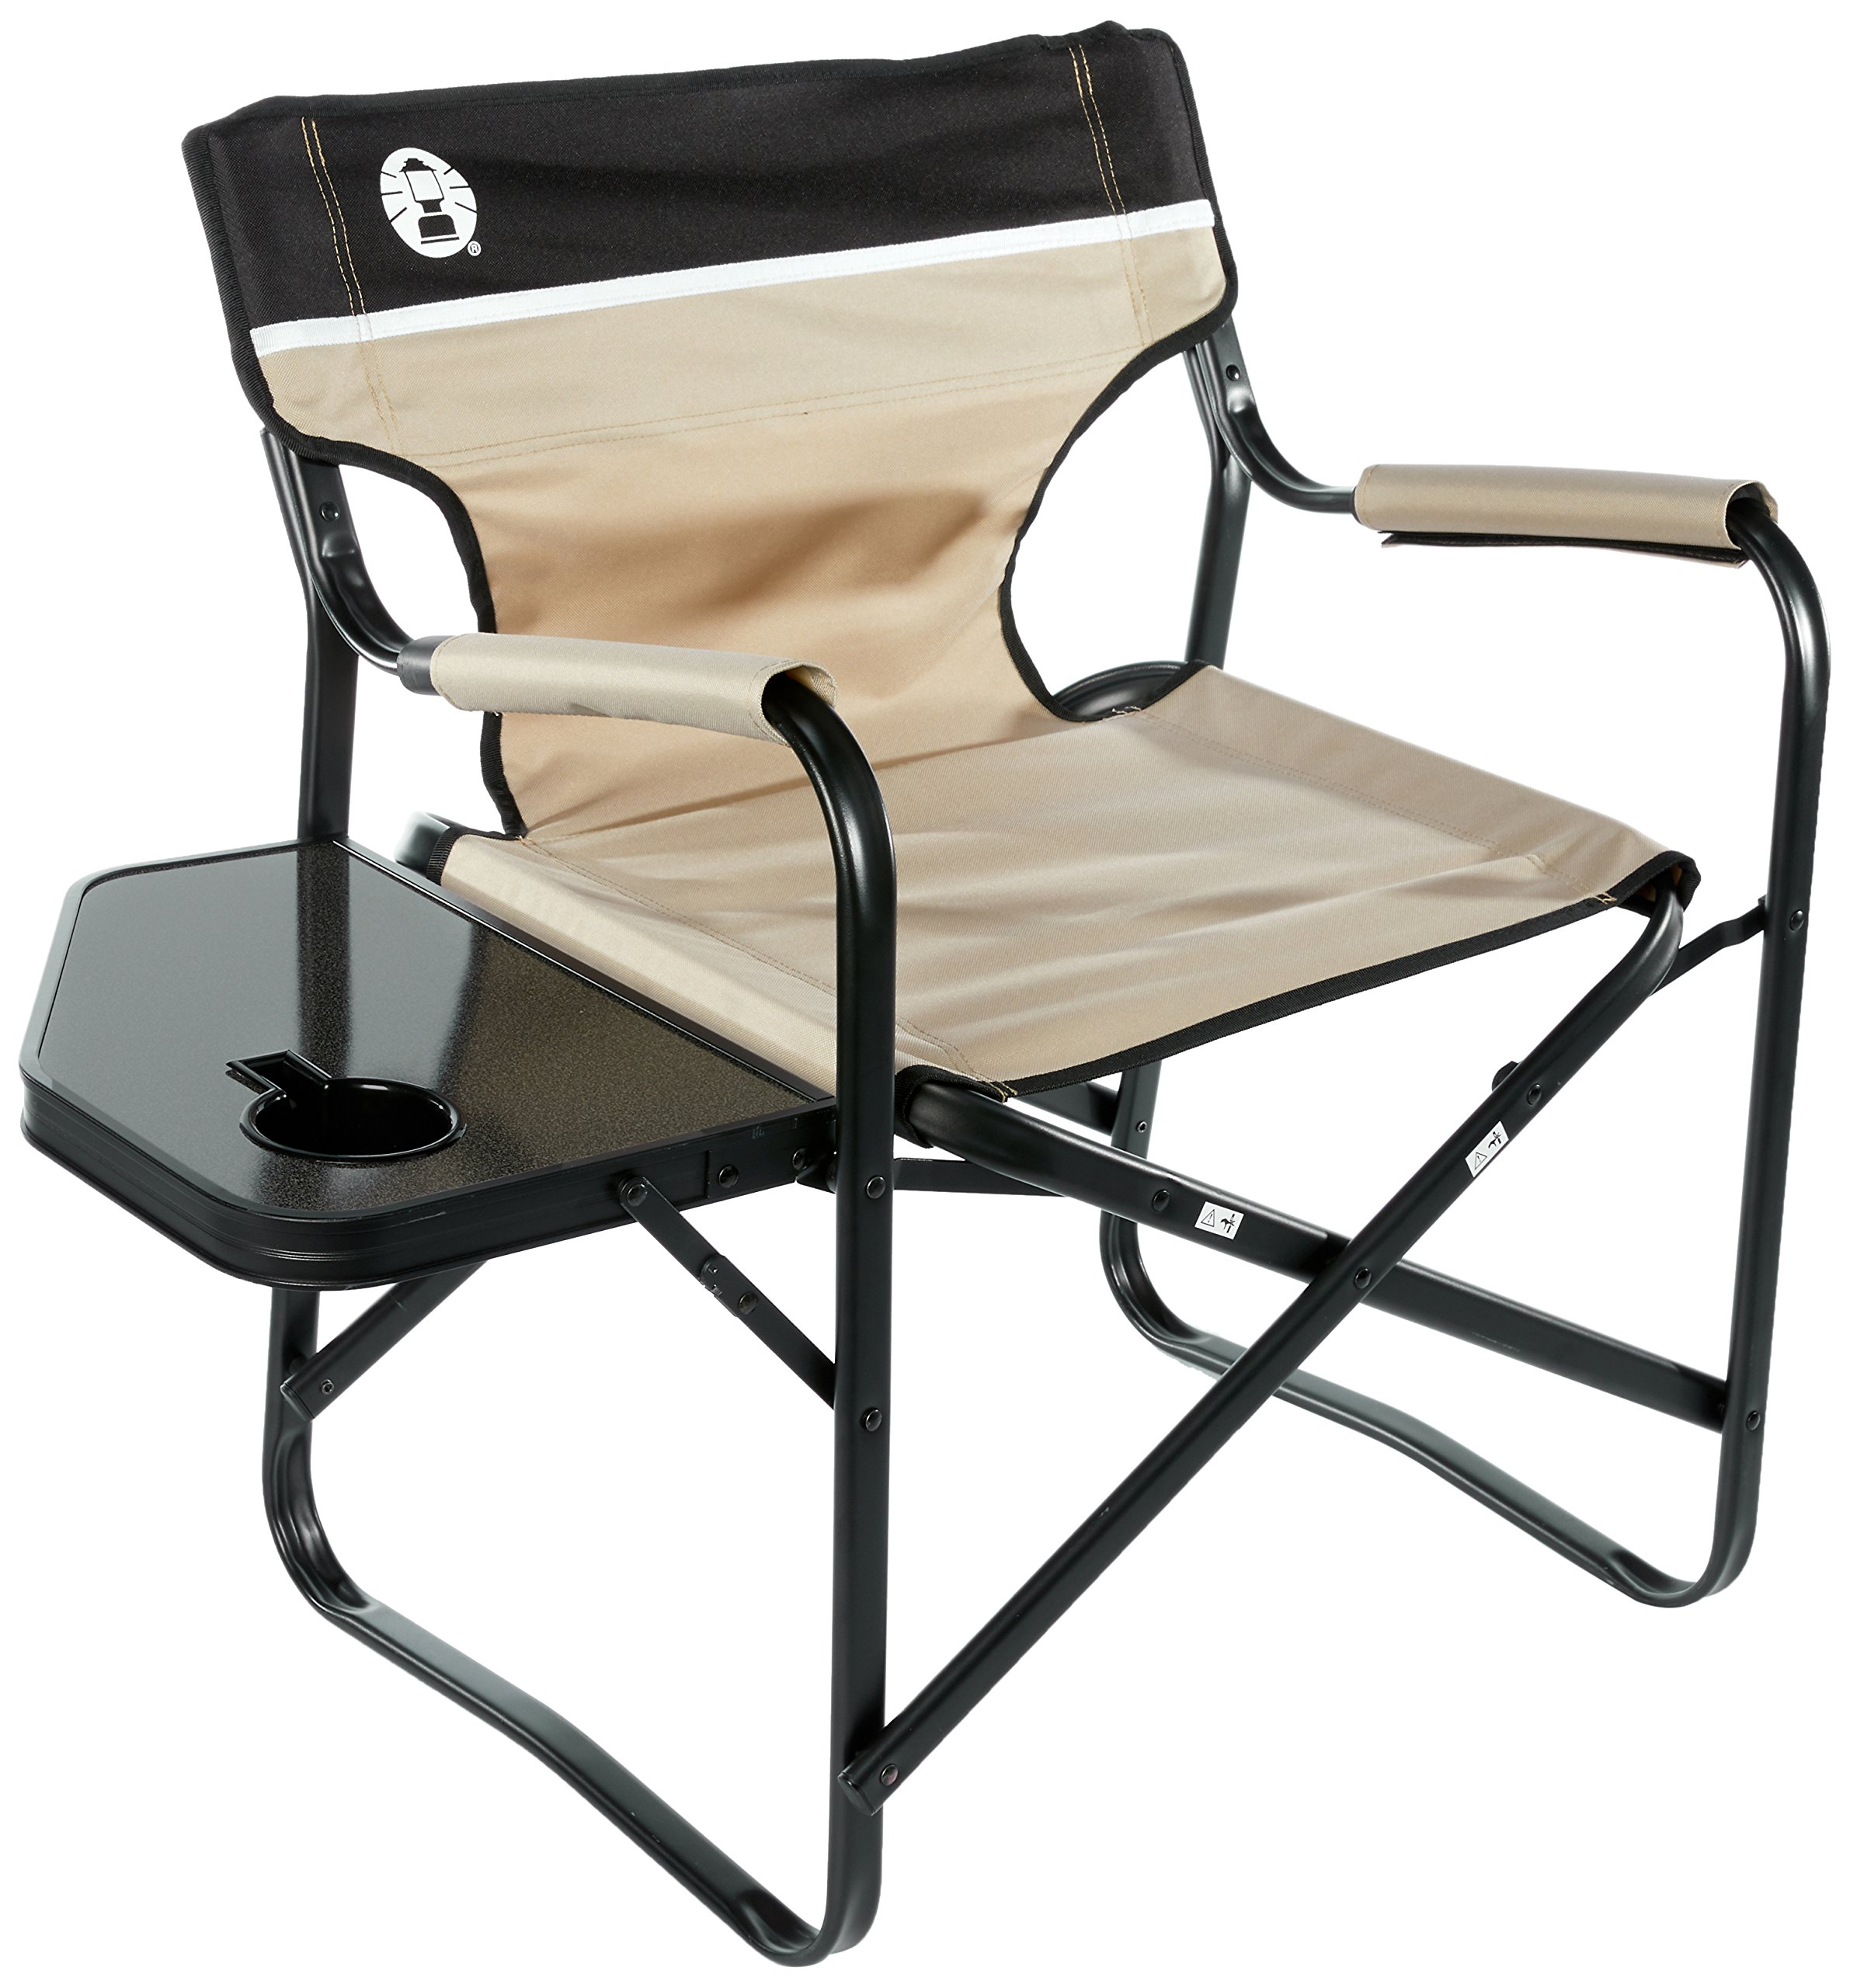 Camping Chairs with Side Table: Amazon.com